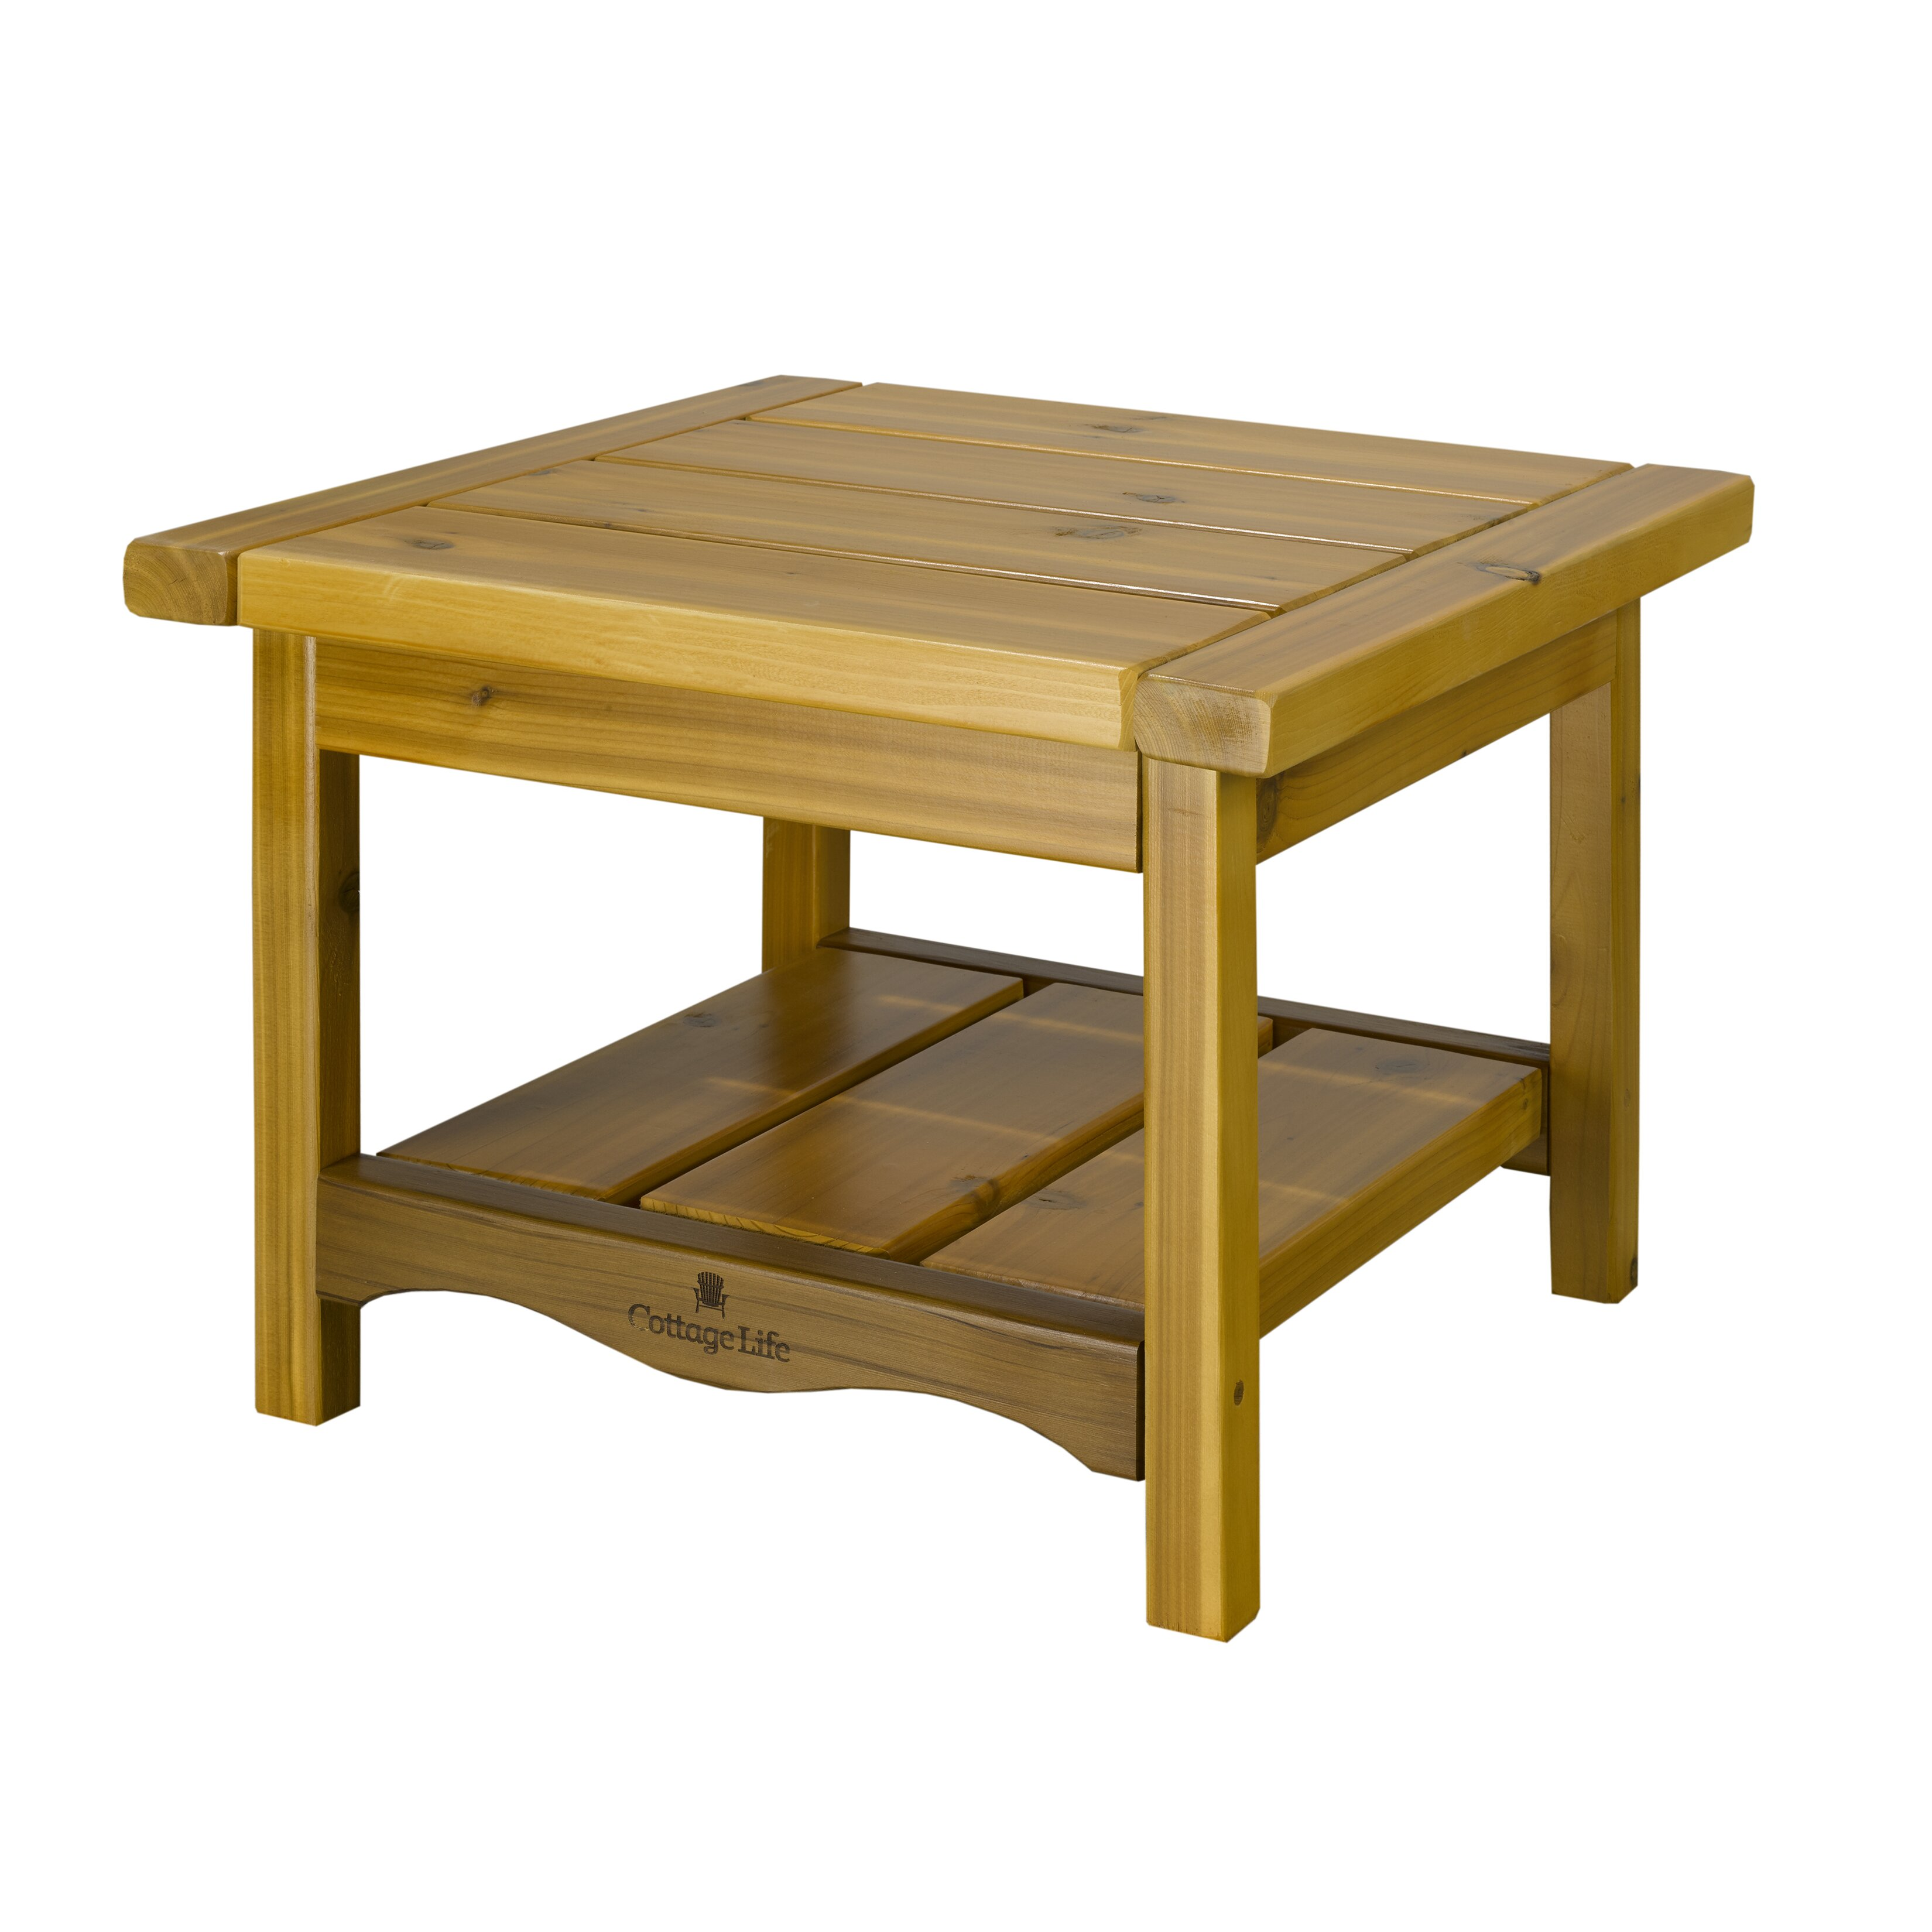 Cottage Life End Table